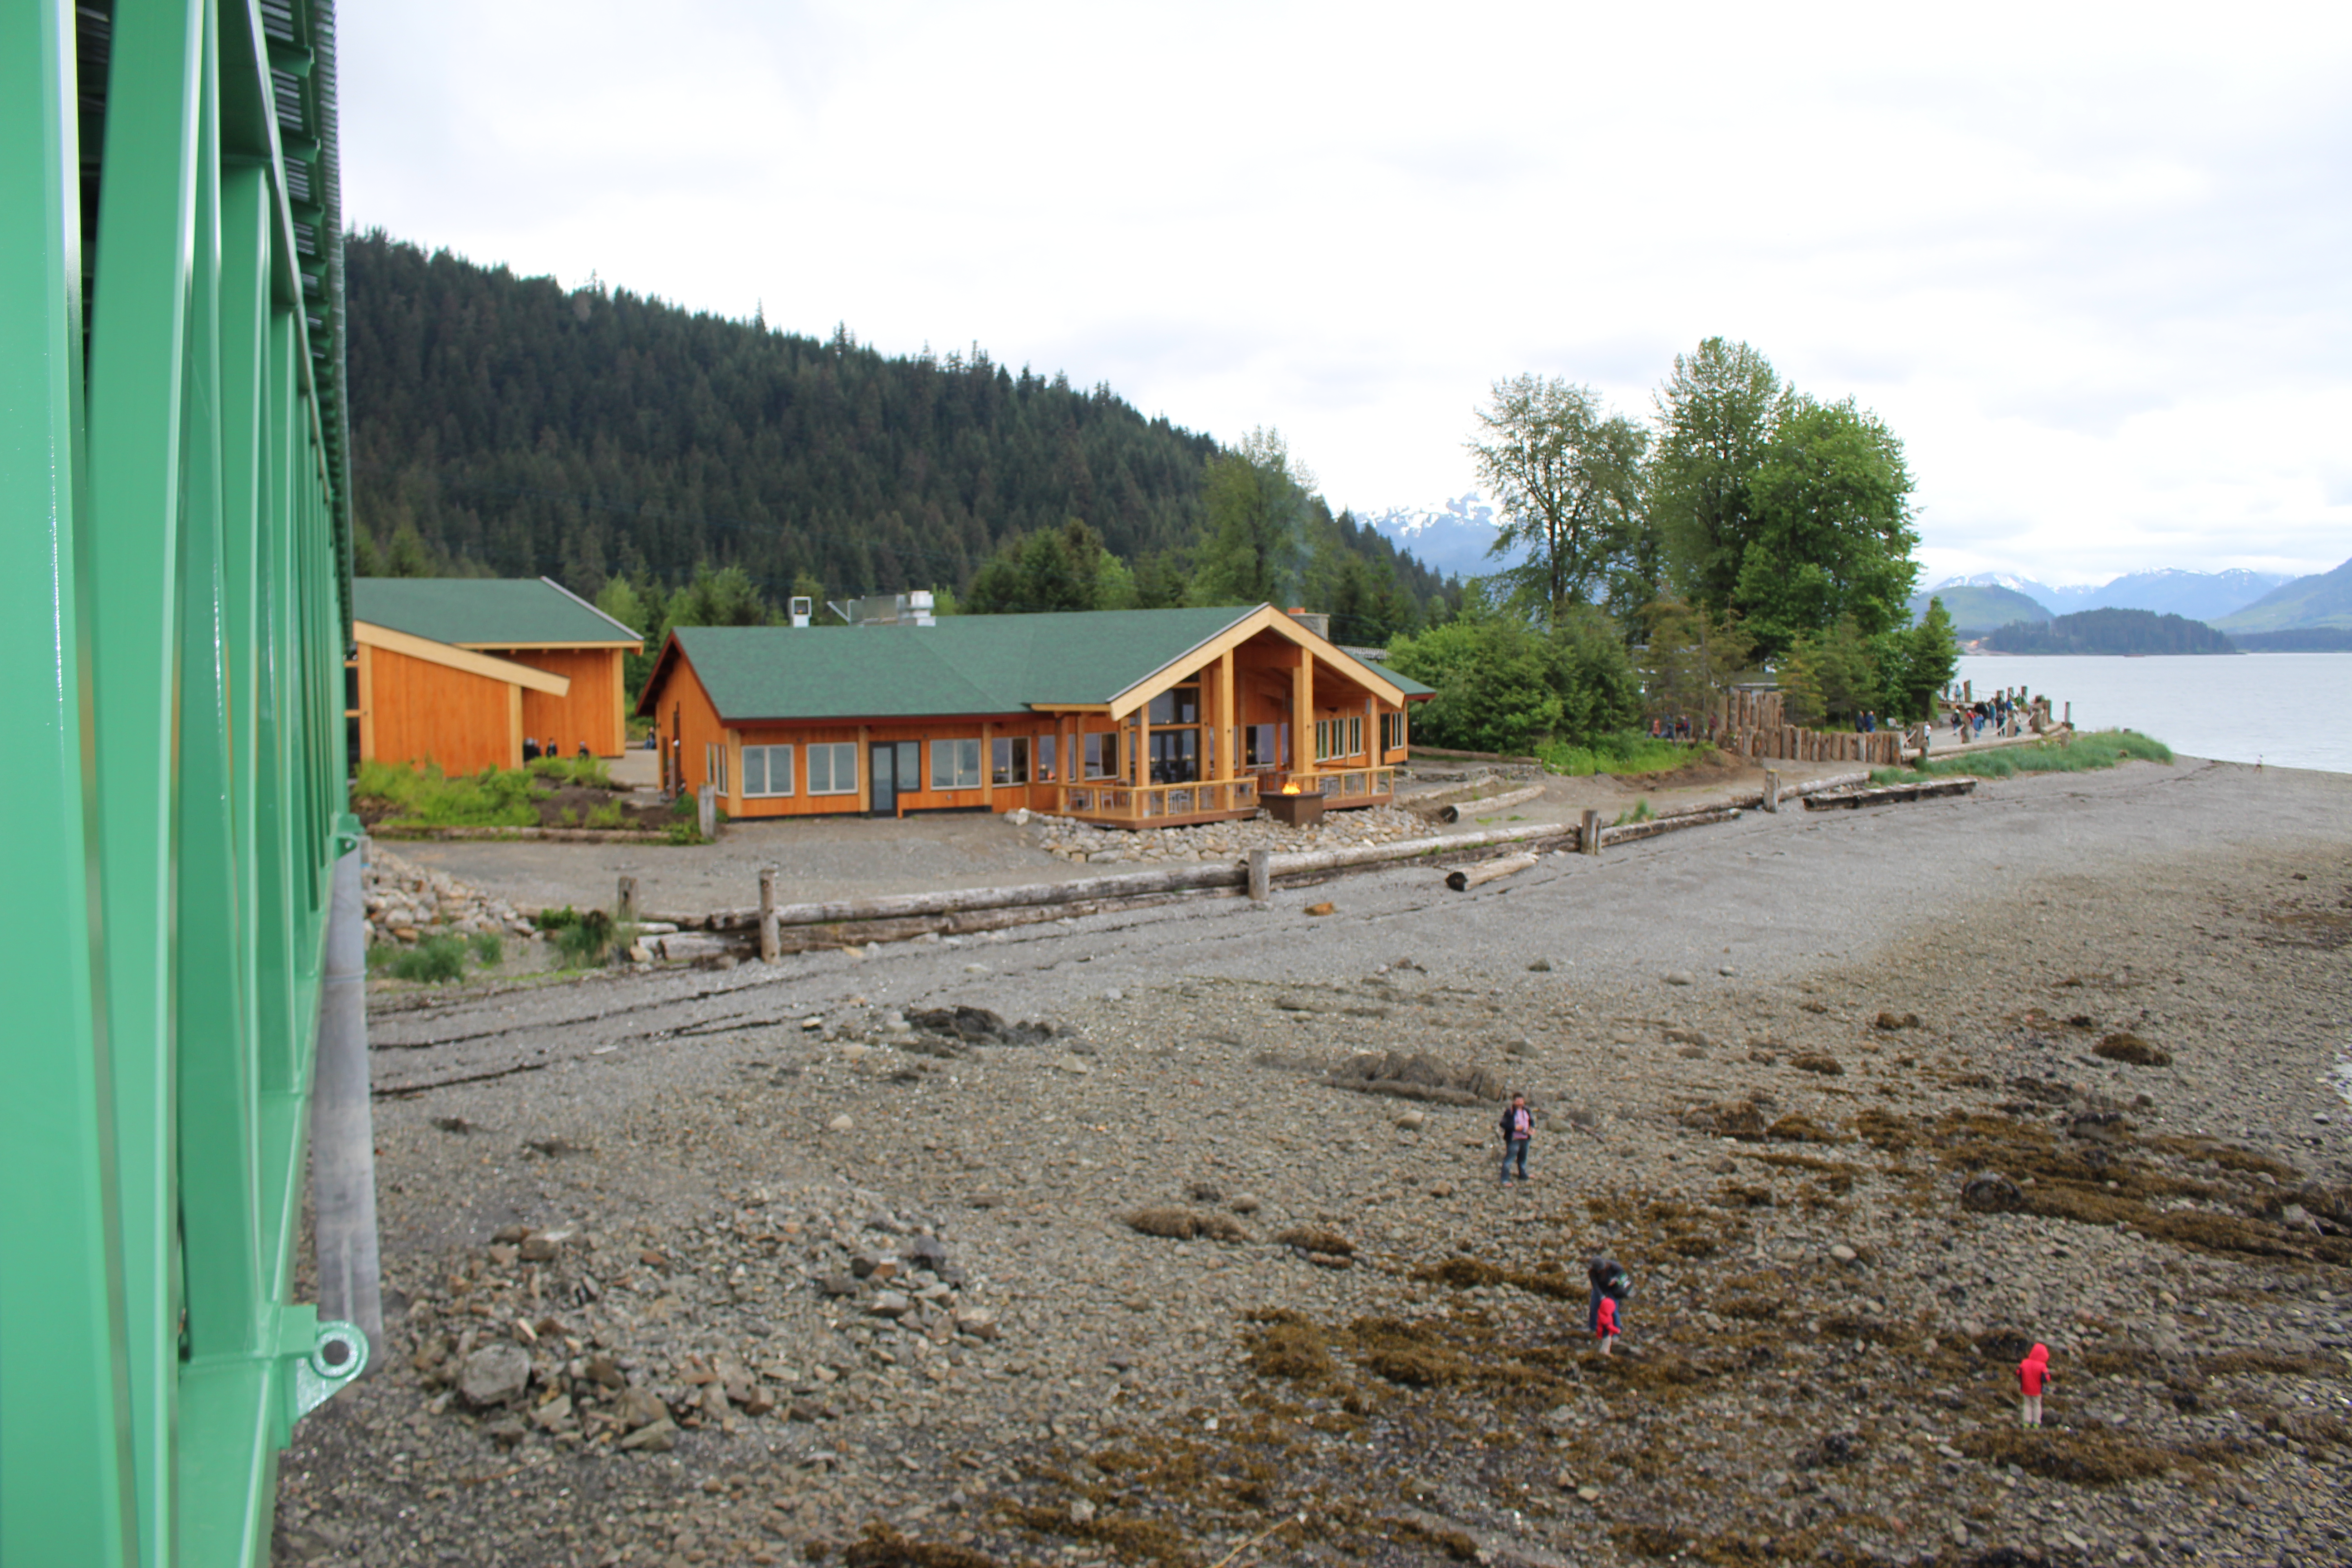 View of the Duck Point Smokehouse from the new cruise ship dock located in Hoonah, Alaska at Icy Strait Point.